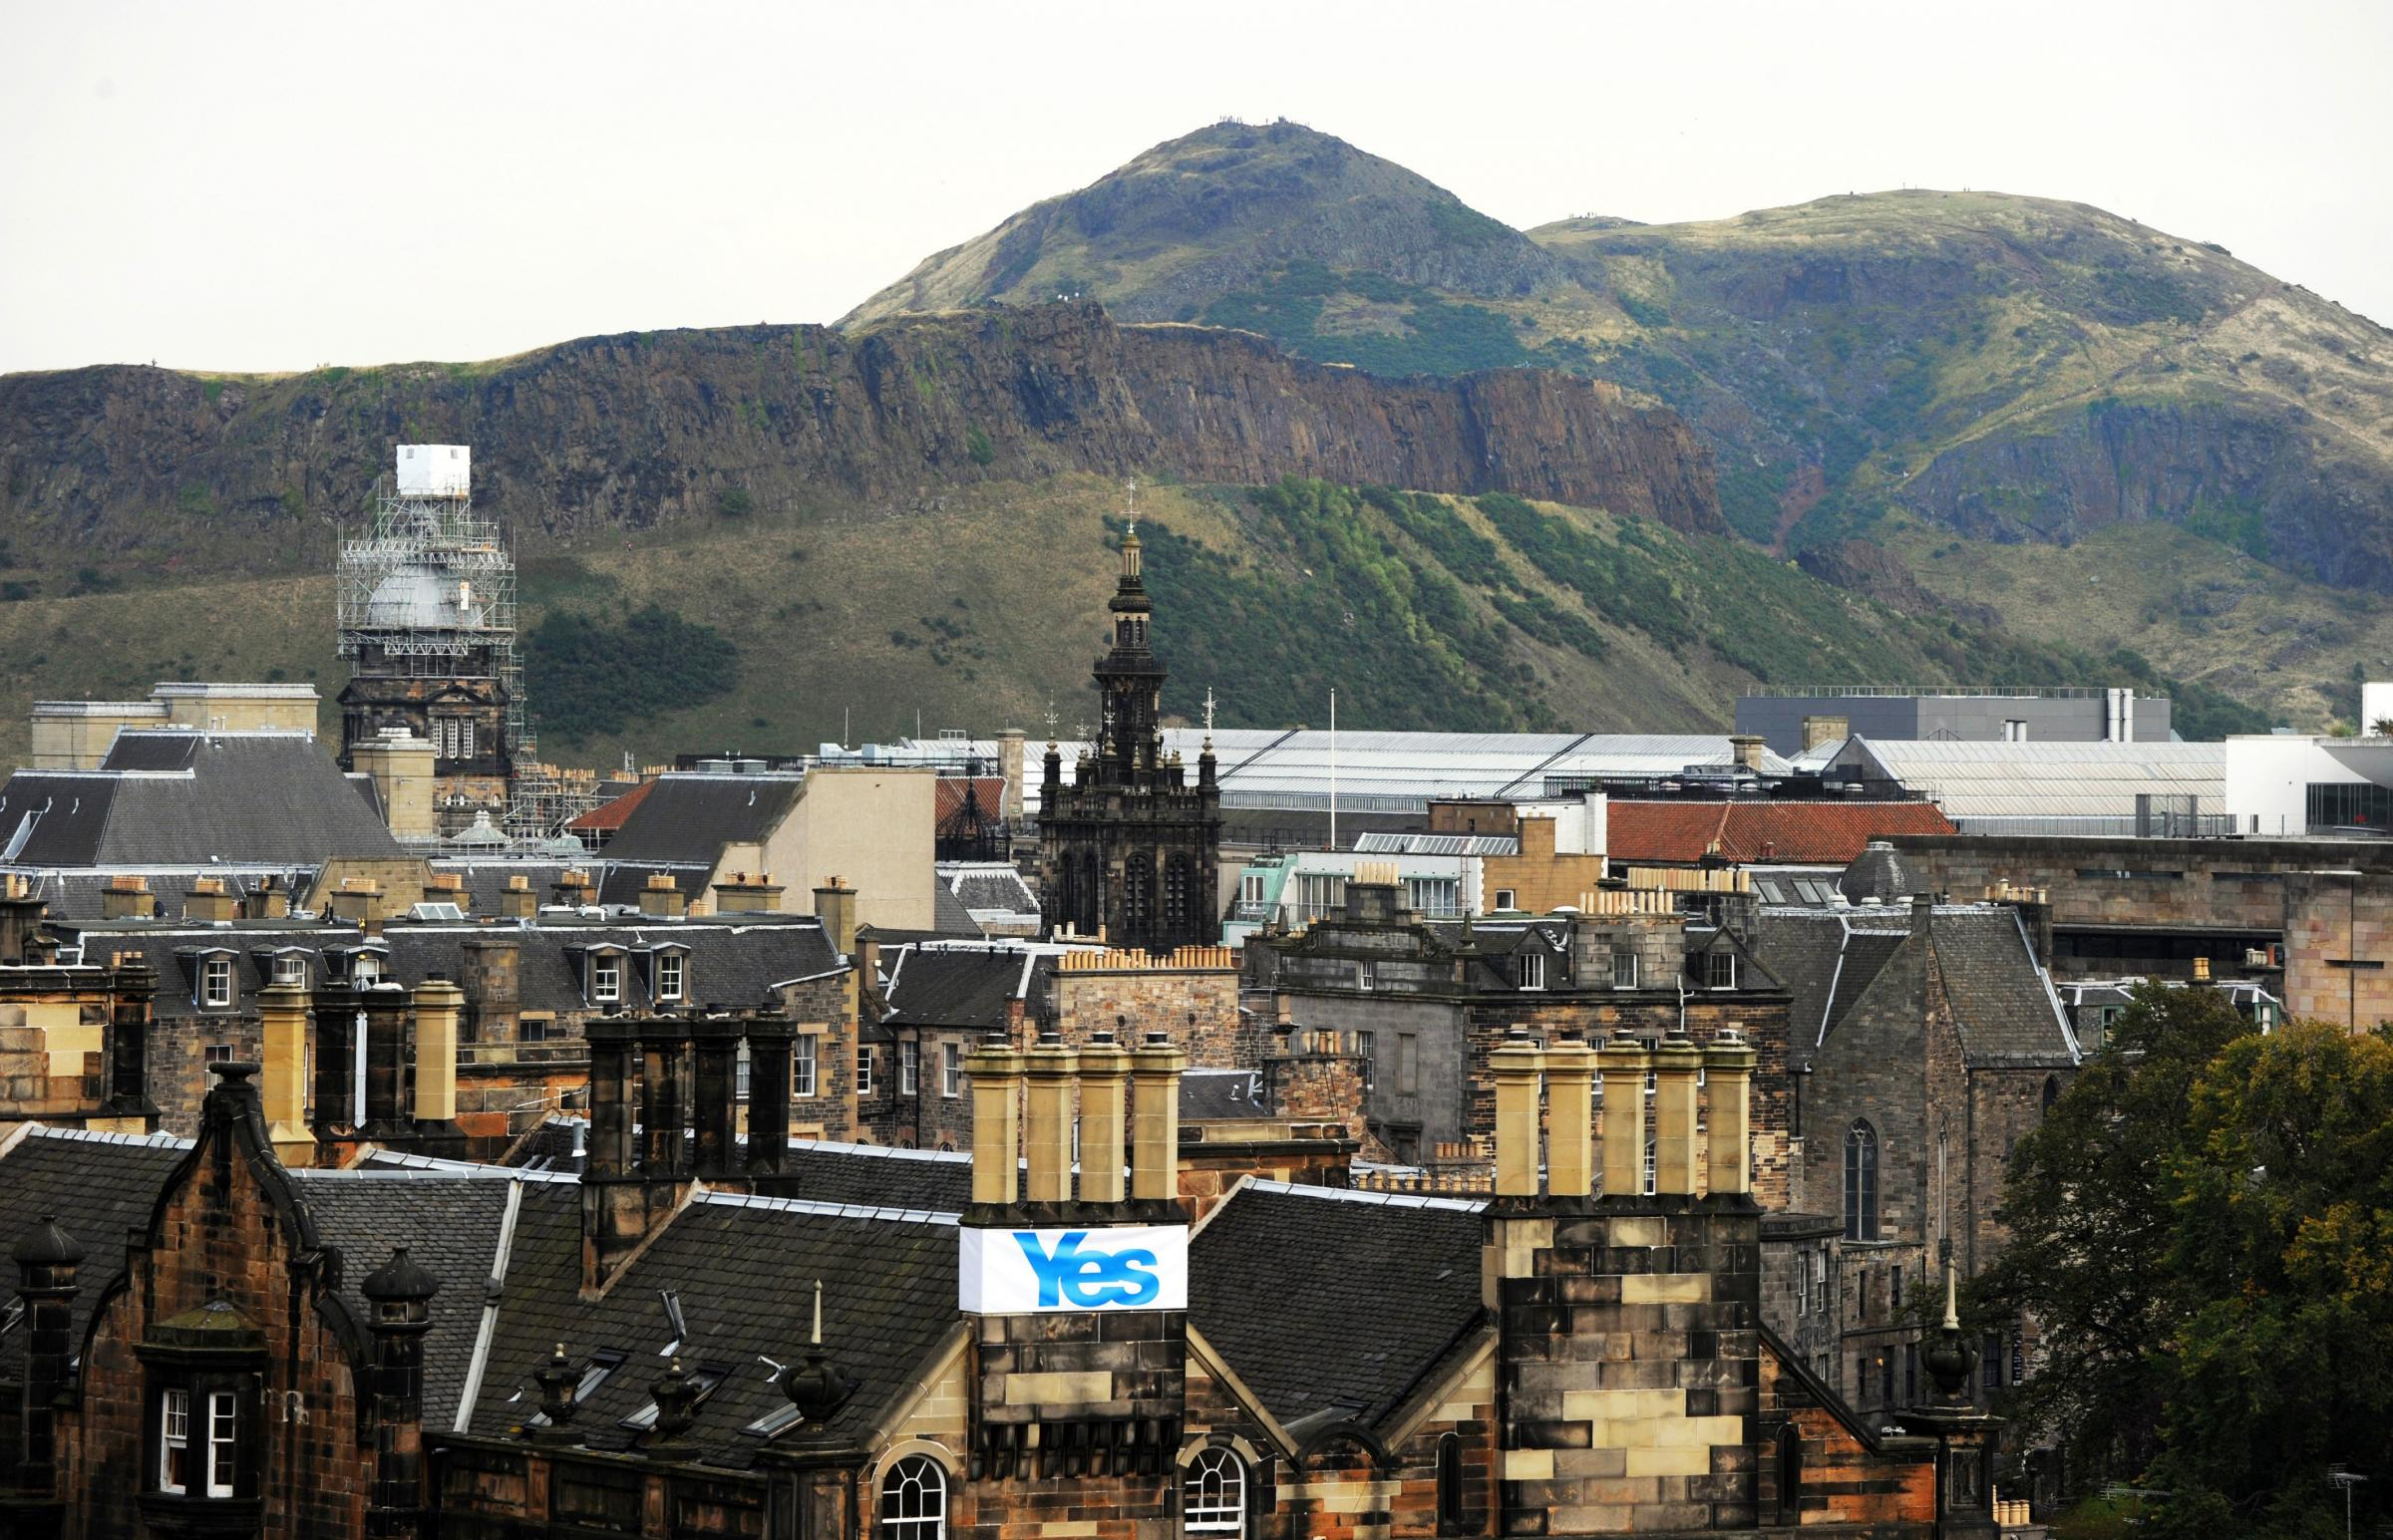 Edinburgh voted 70 per cent to remain in the EU, so will it now be possible to convert some of its 2014 No voters?